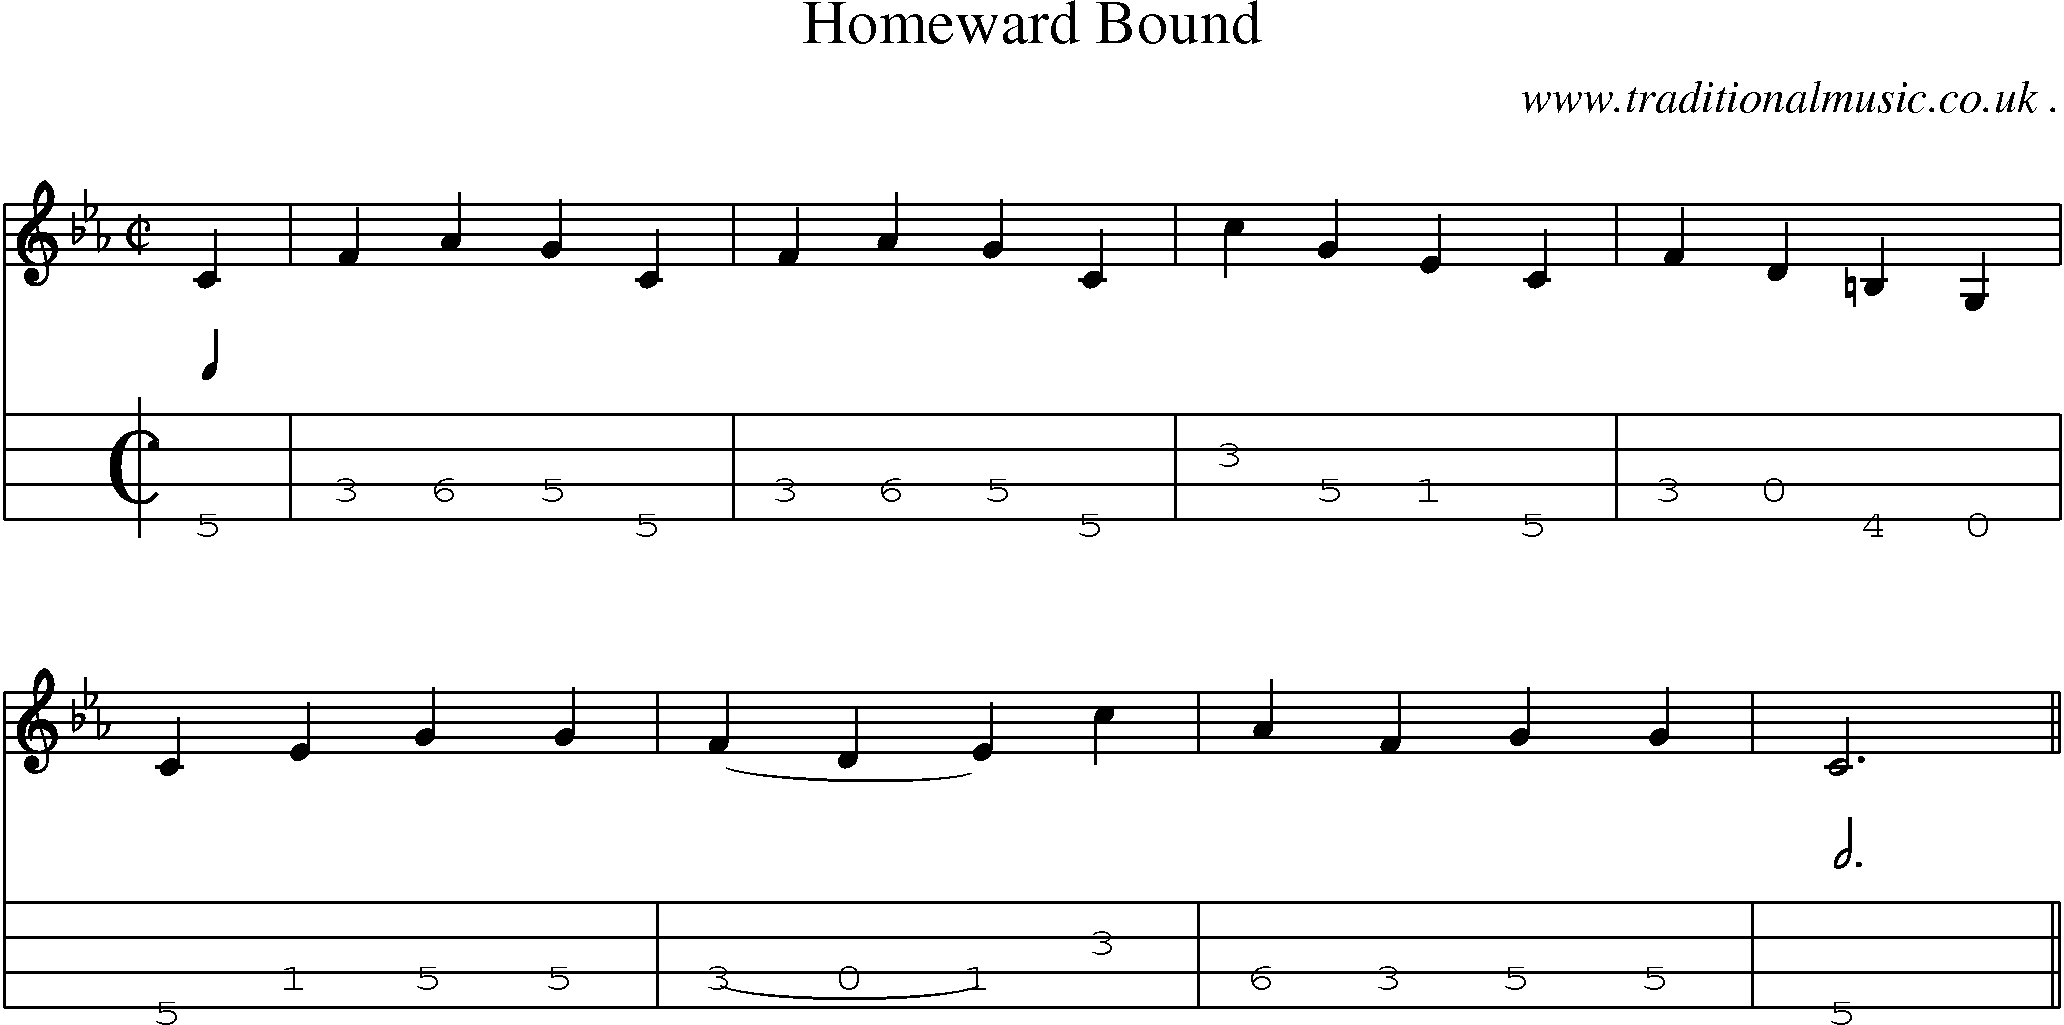 Sheet music and mandolin tabs for homeward bound sheet music sheet music and mandolin tabs for homeward bound hexwebz Images